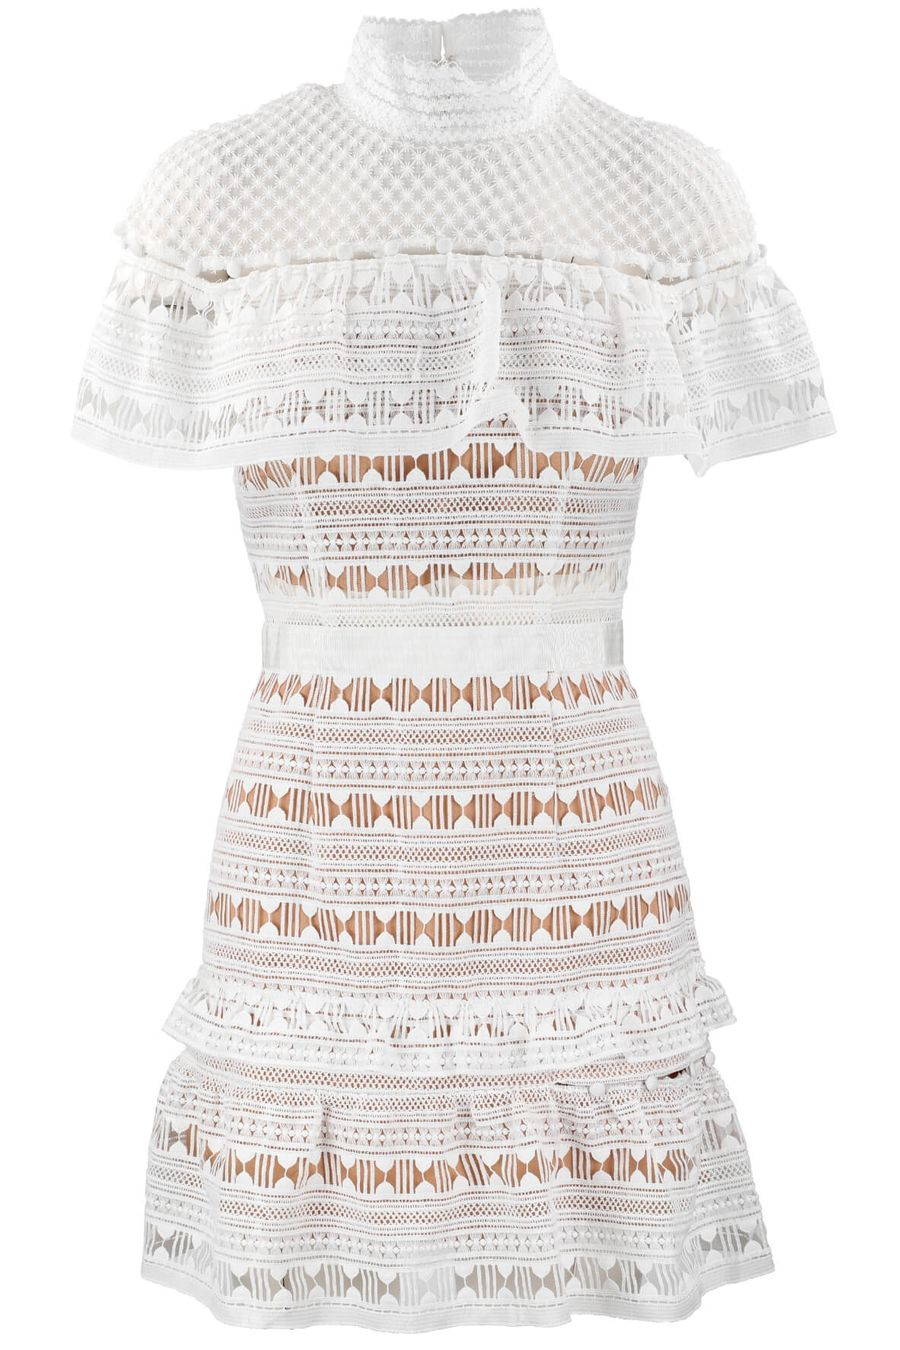 Style Theory_Crazy Rich Asians_avantlook-sheila-ruffle-trimmed-lace-mini-1